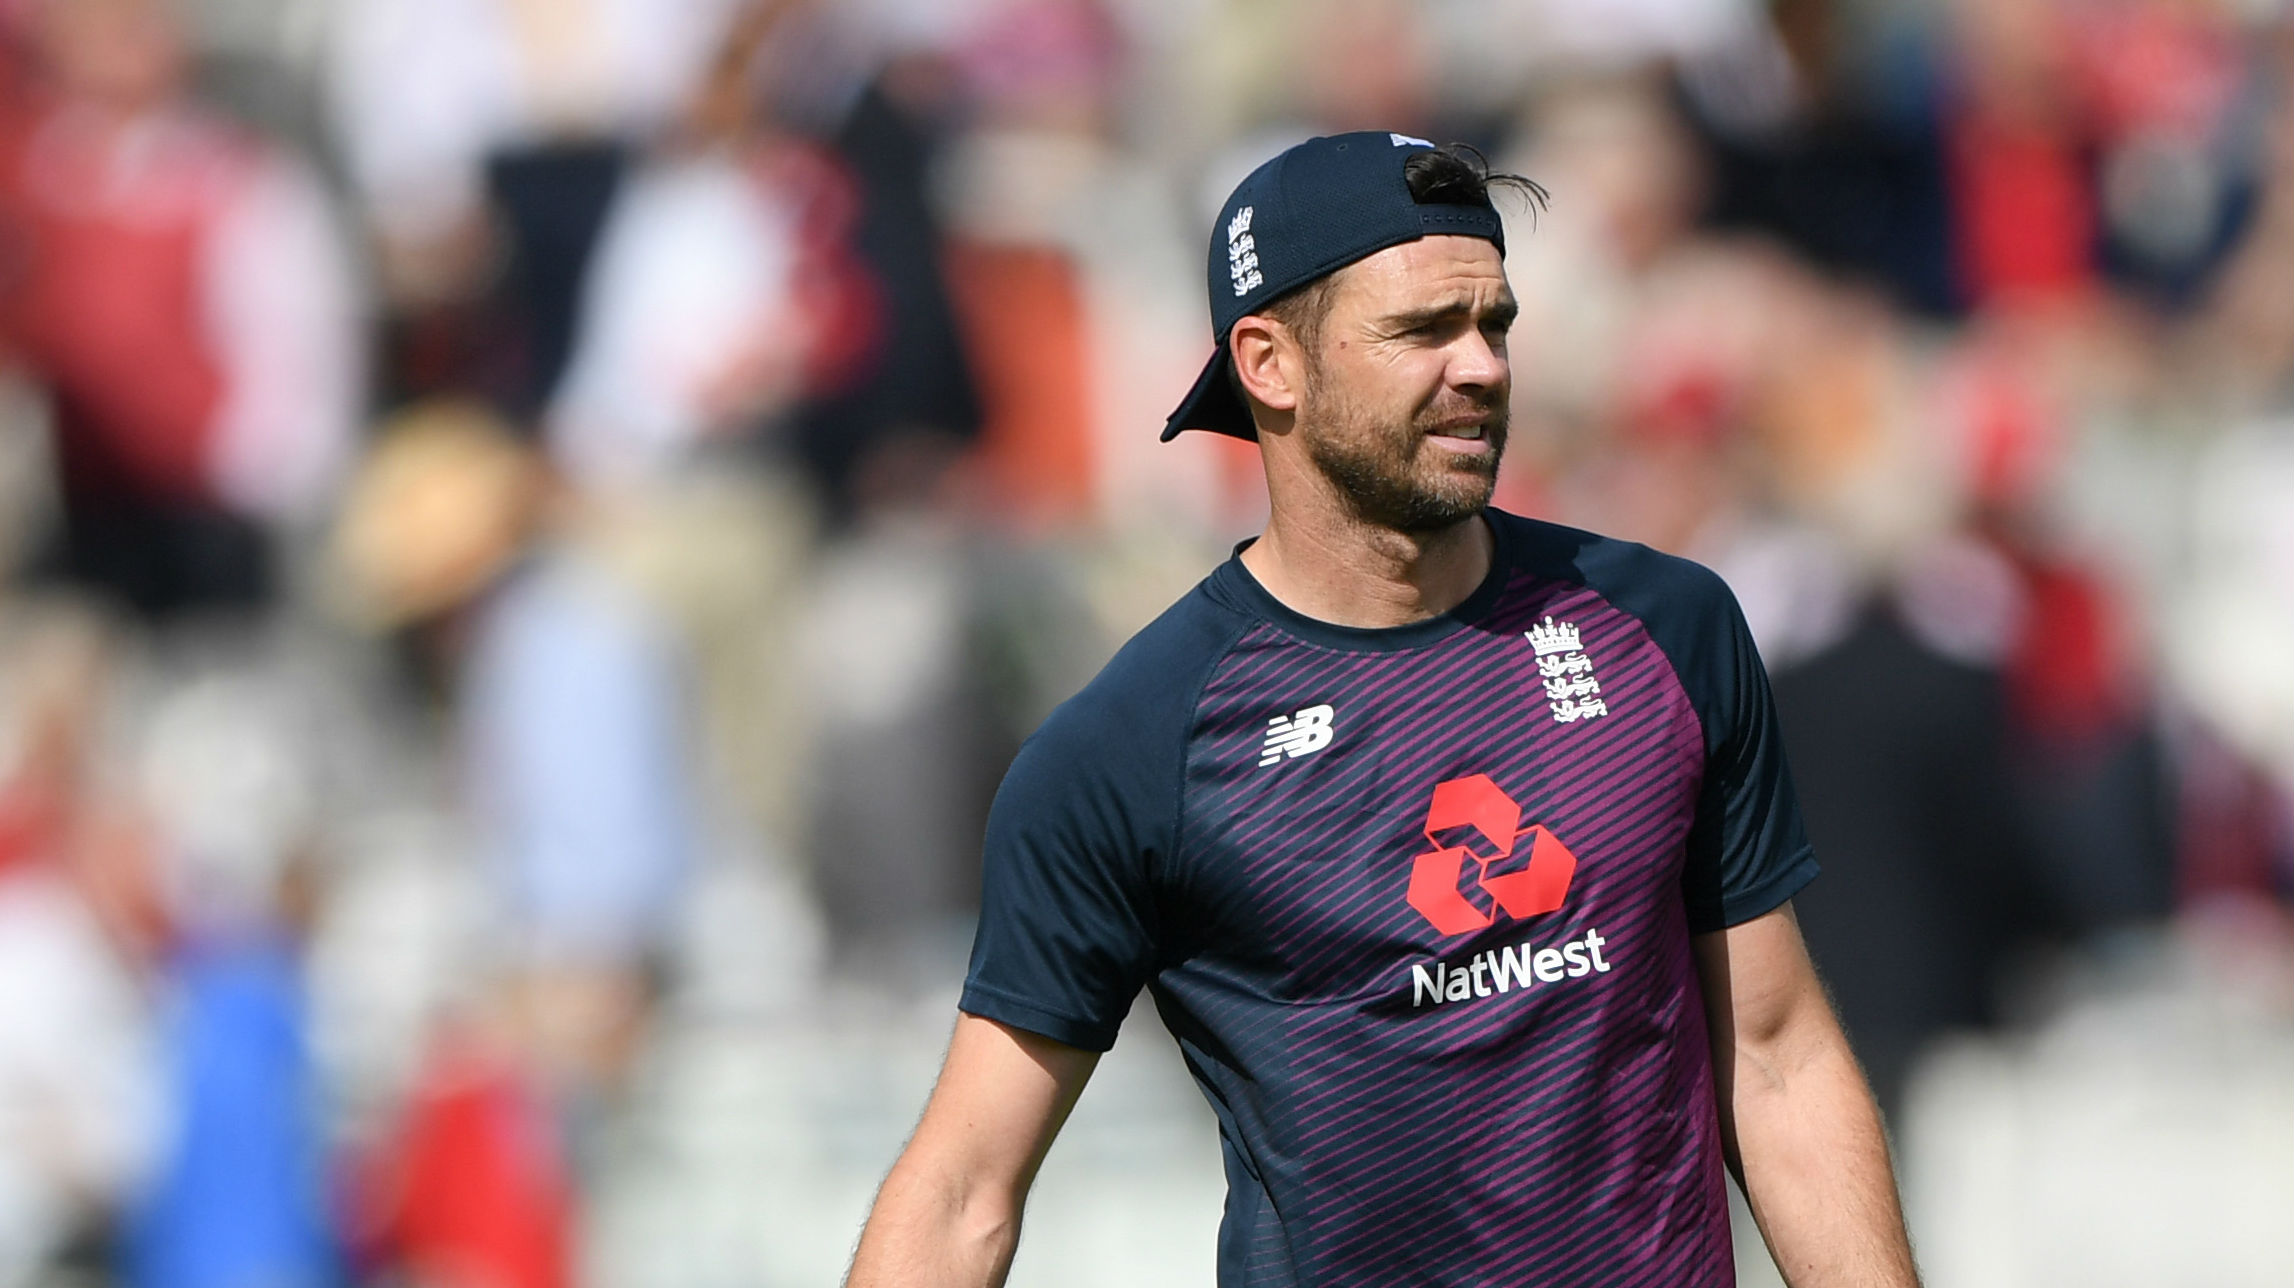 James Anderson to miss Headingley Test, gets chance to prove fitness